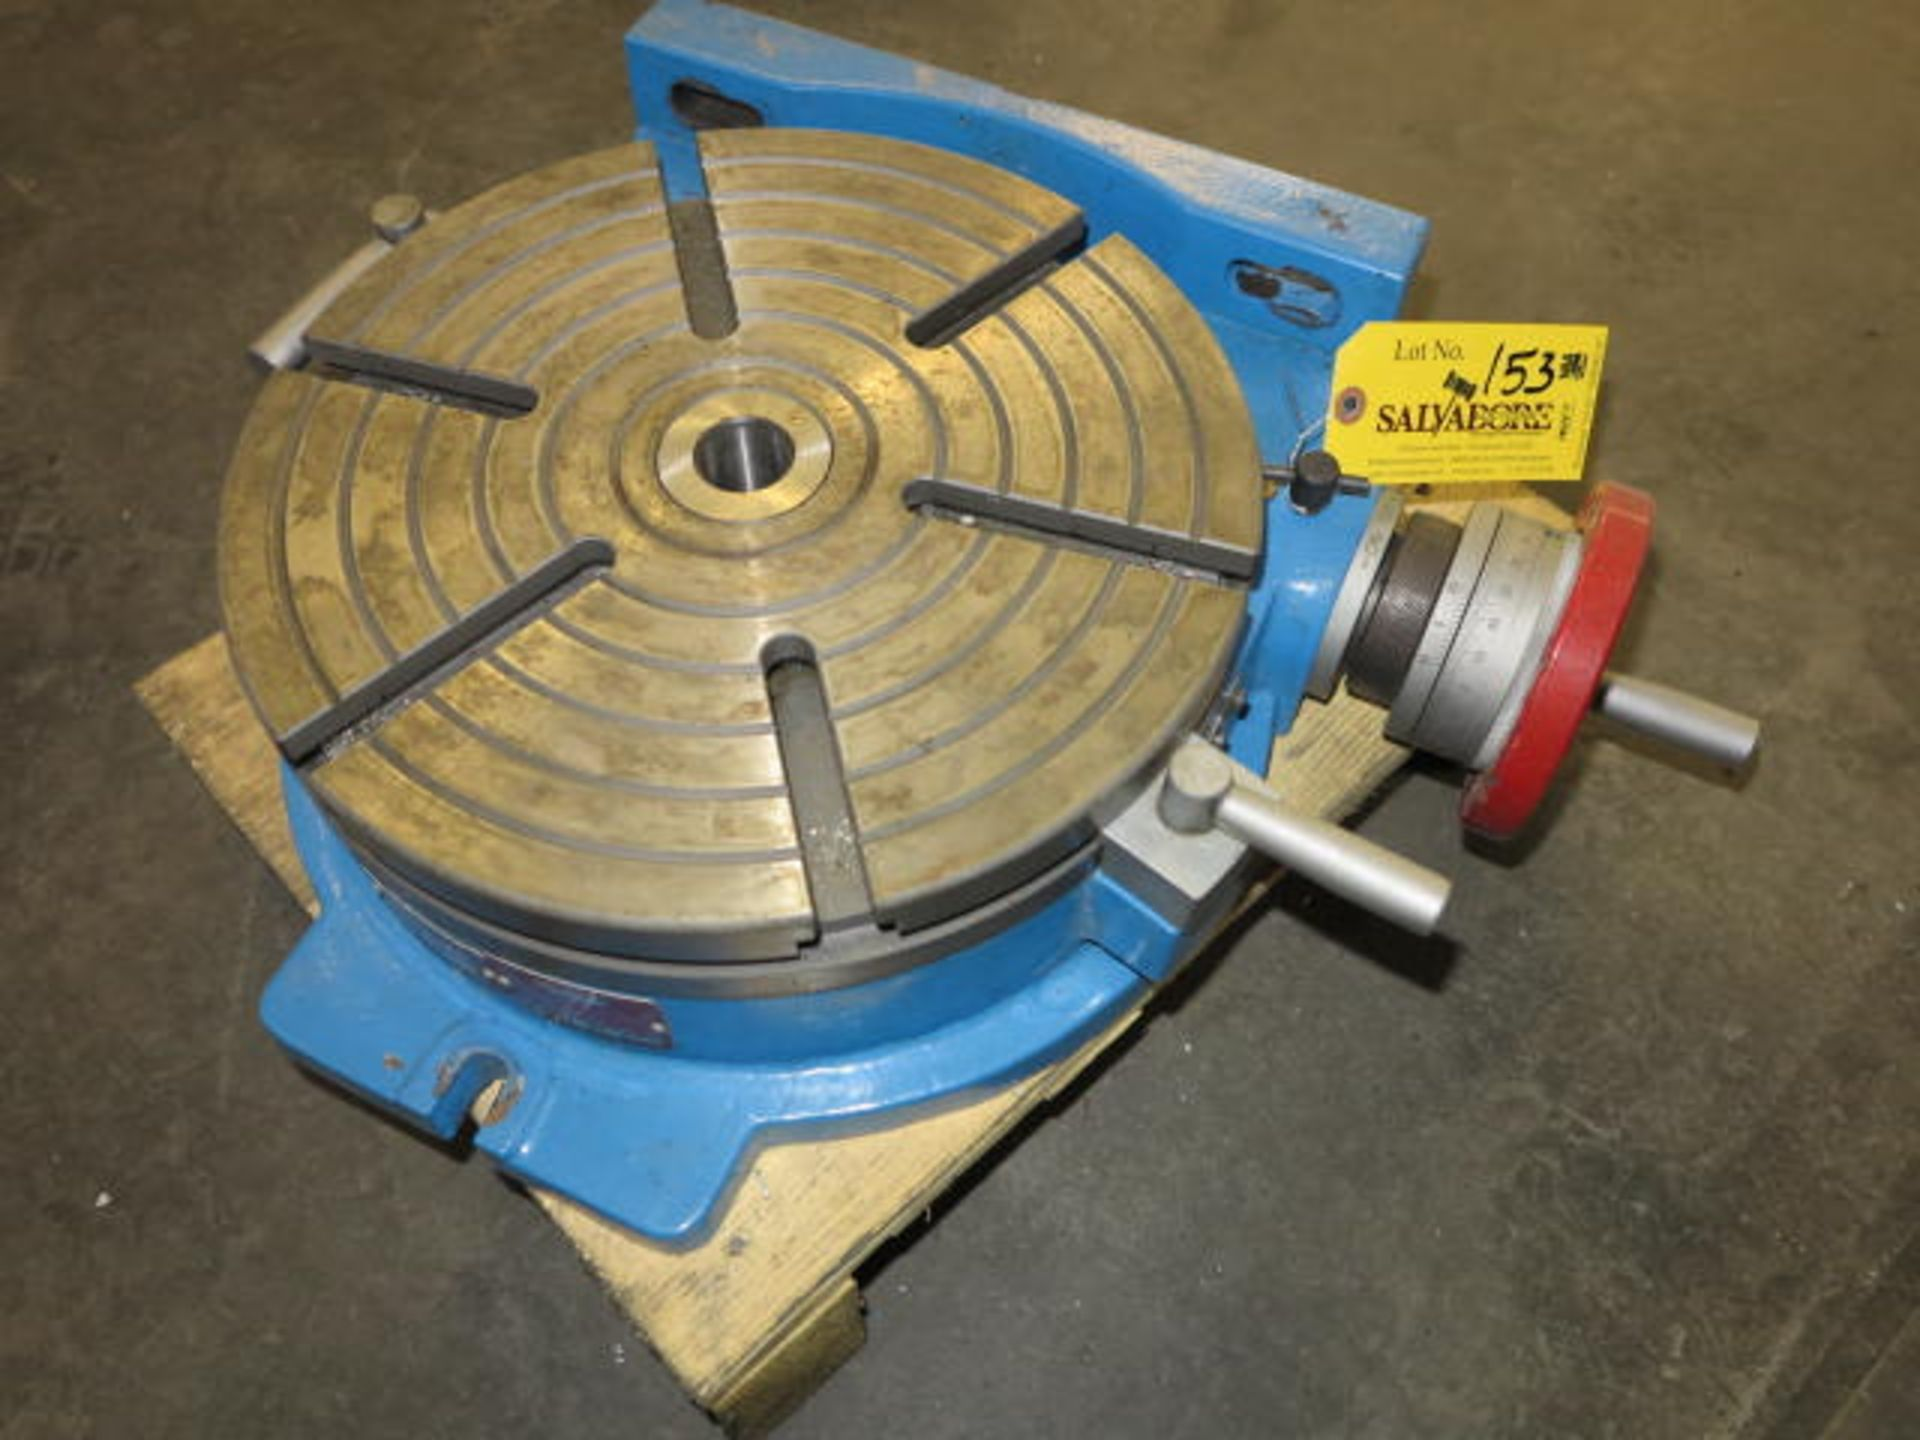 Lot 153 - SharsTool Co 14'' Precision Rotary Table Location: Elmco Tool 3 Peter Rd Bristol, RI